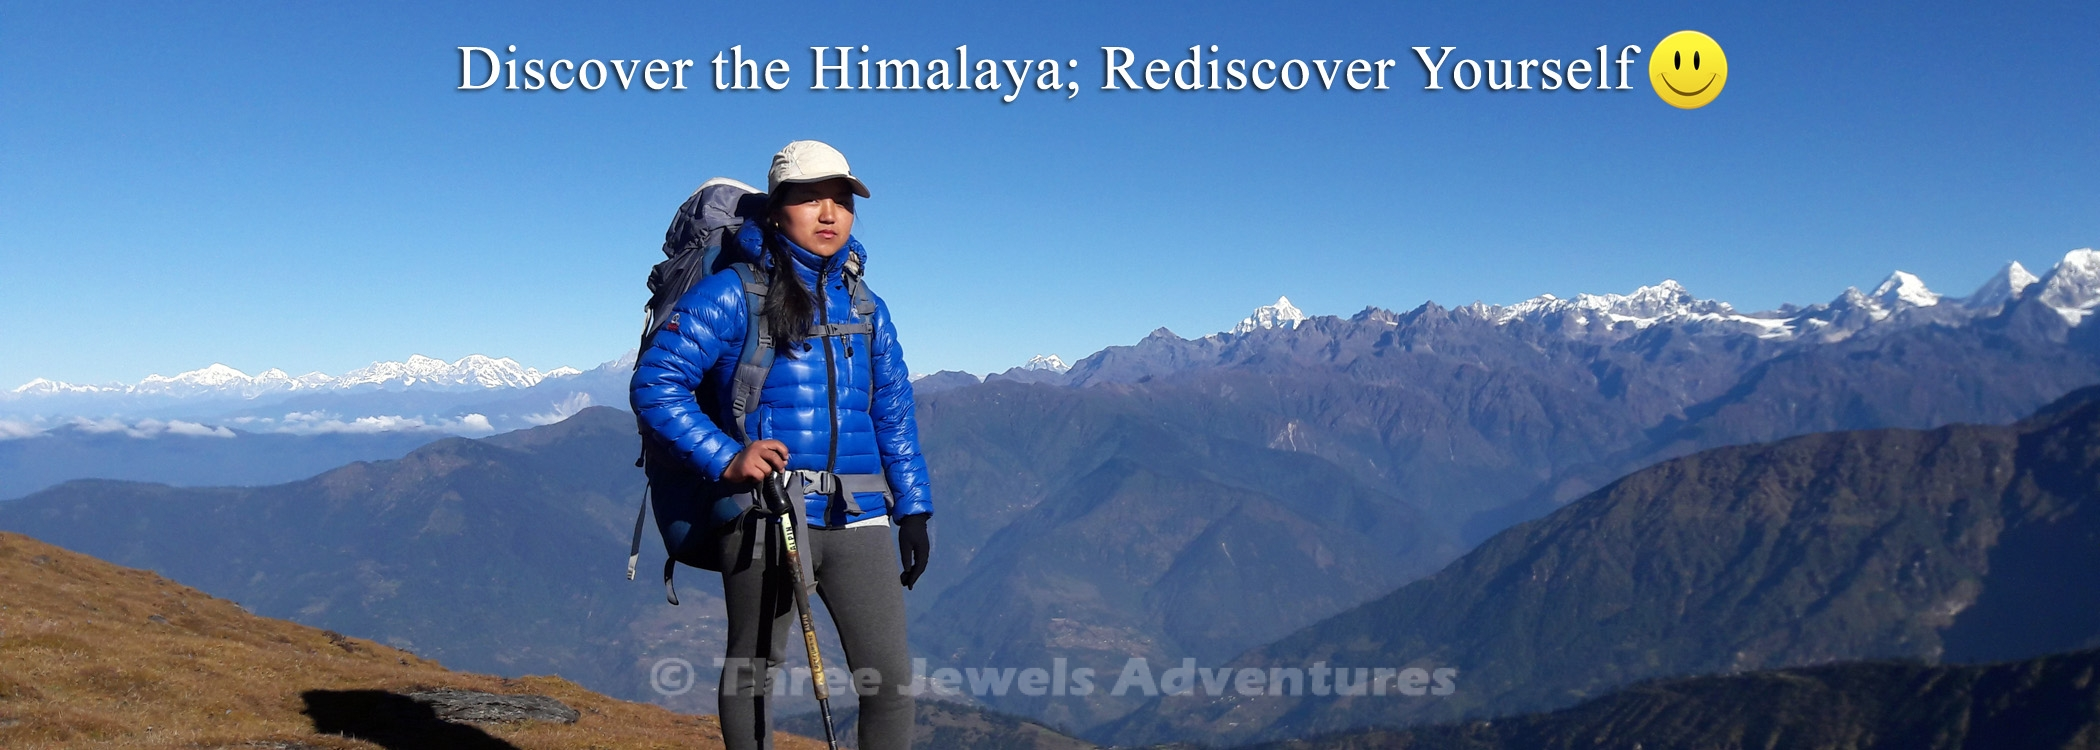 Discover the Himalaya; Rediscover Yourself!